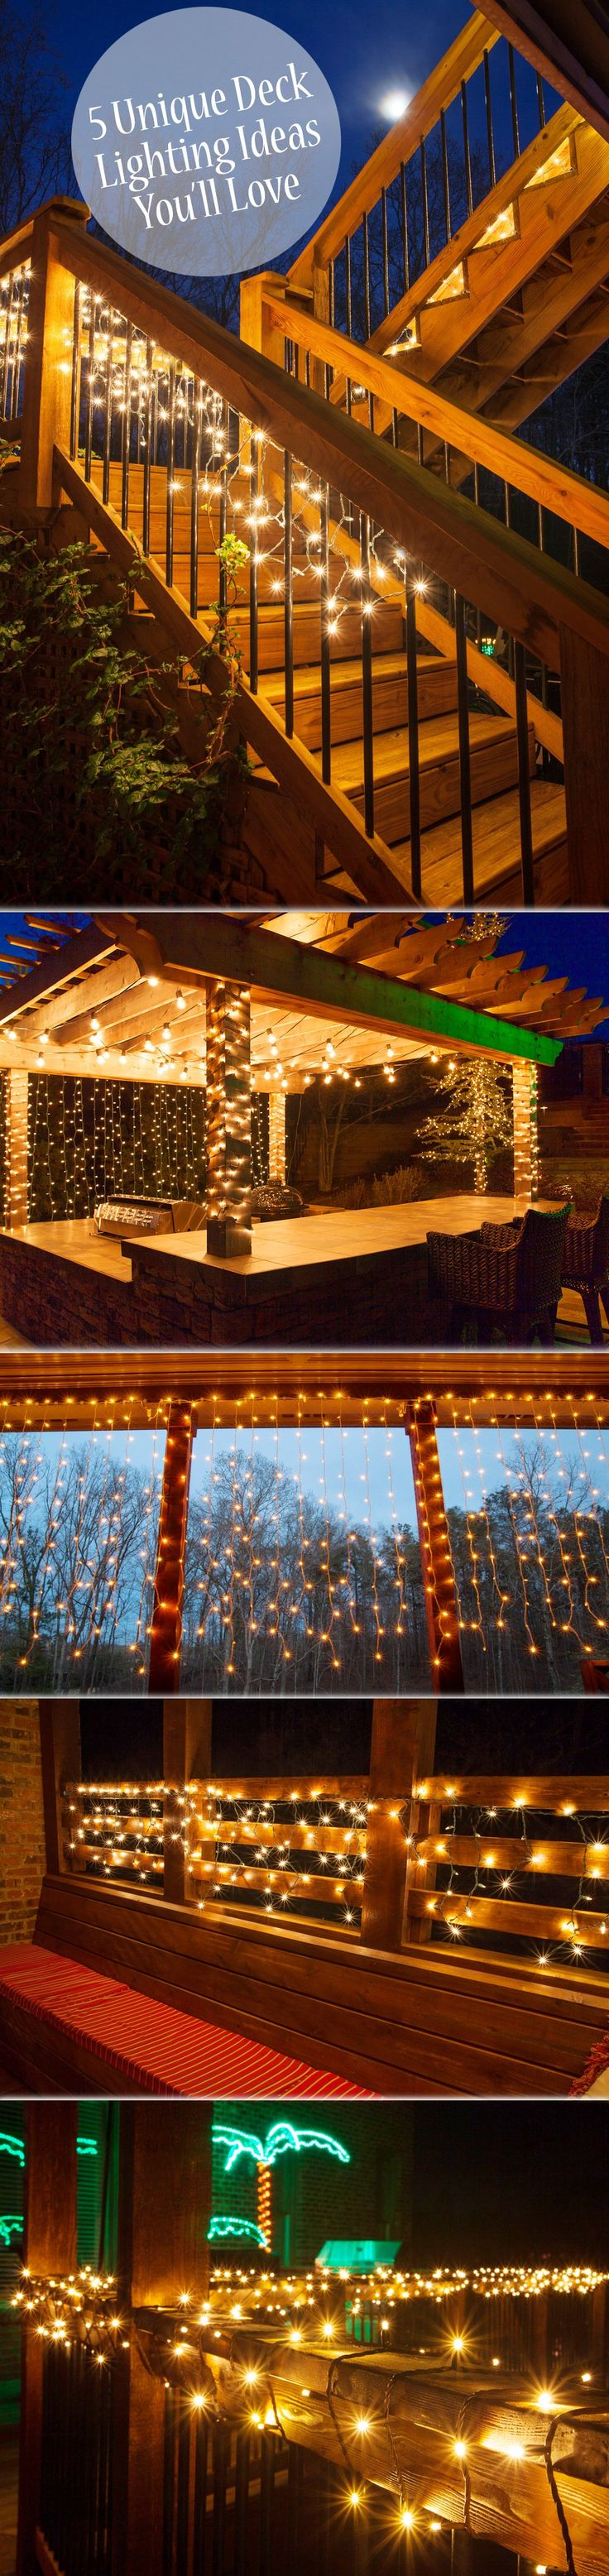 String Lights Patio Cover : 17 Best ideas about Deck Lighting on Pinterest Backyard lights diy, Patio lighting and ...